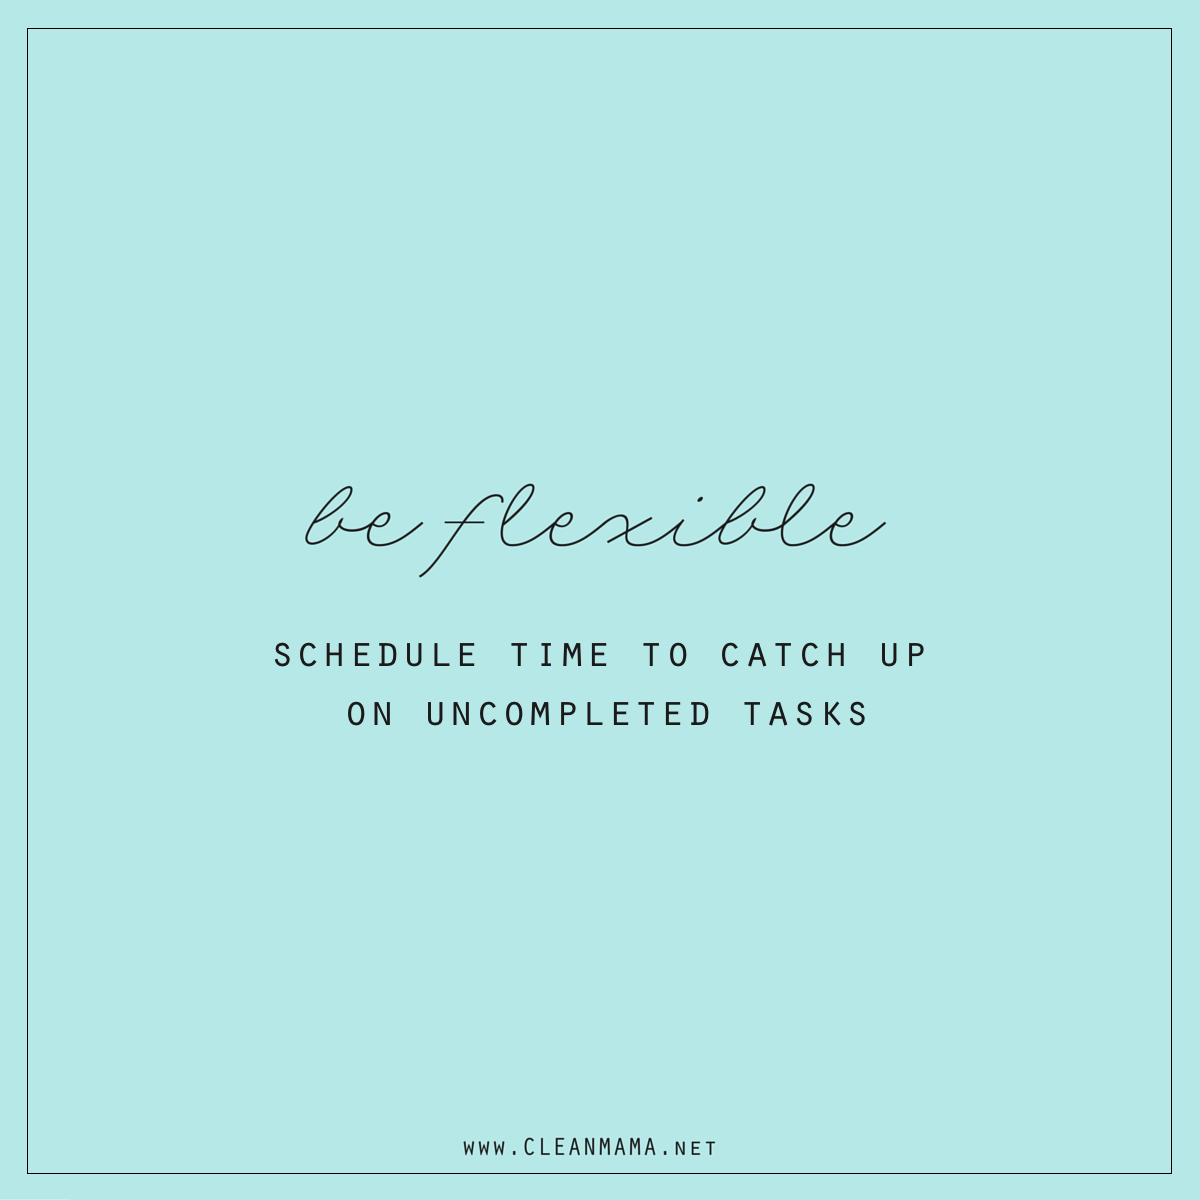 schedule time to catch up on uncompleted tasks - clean mama